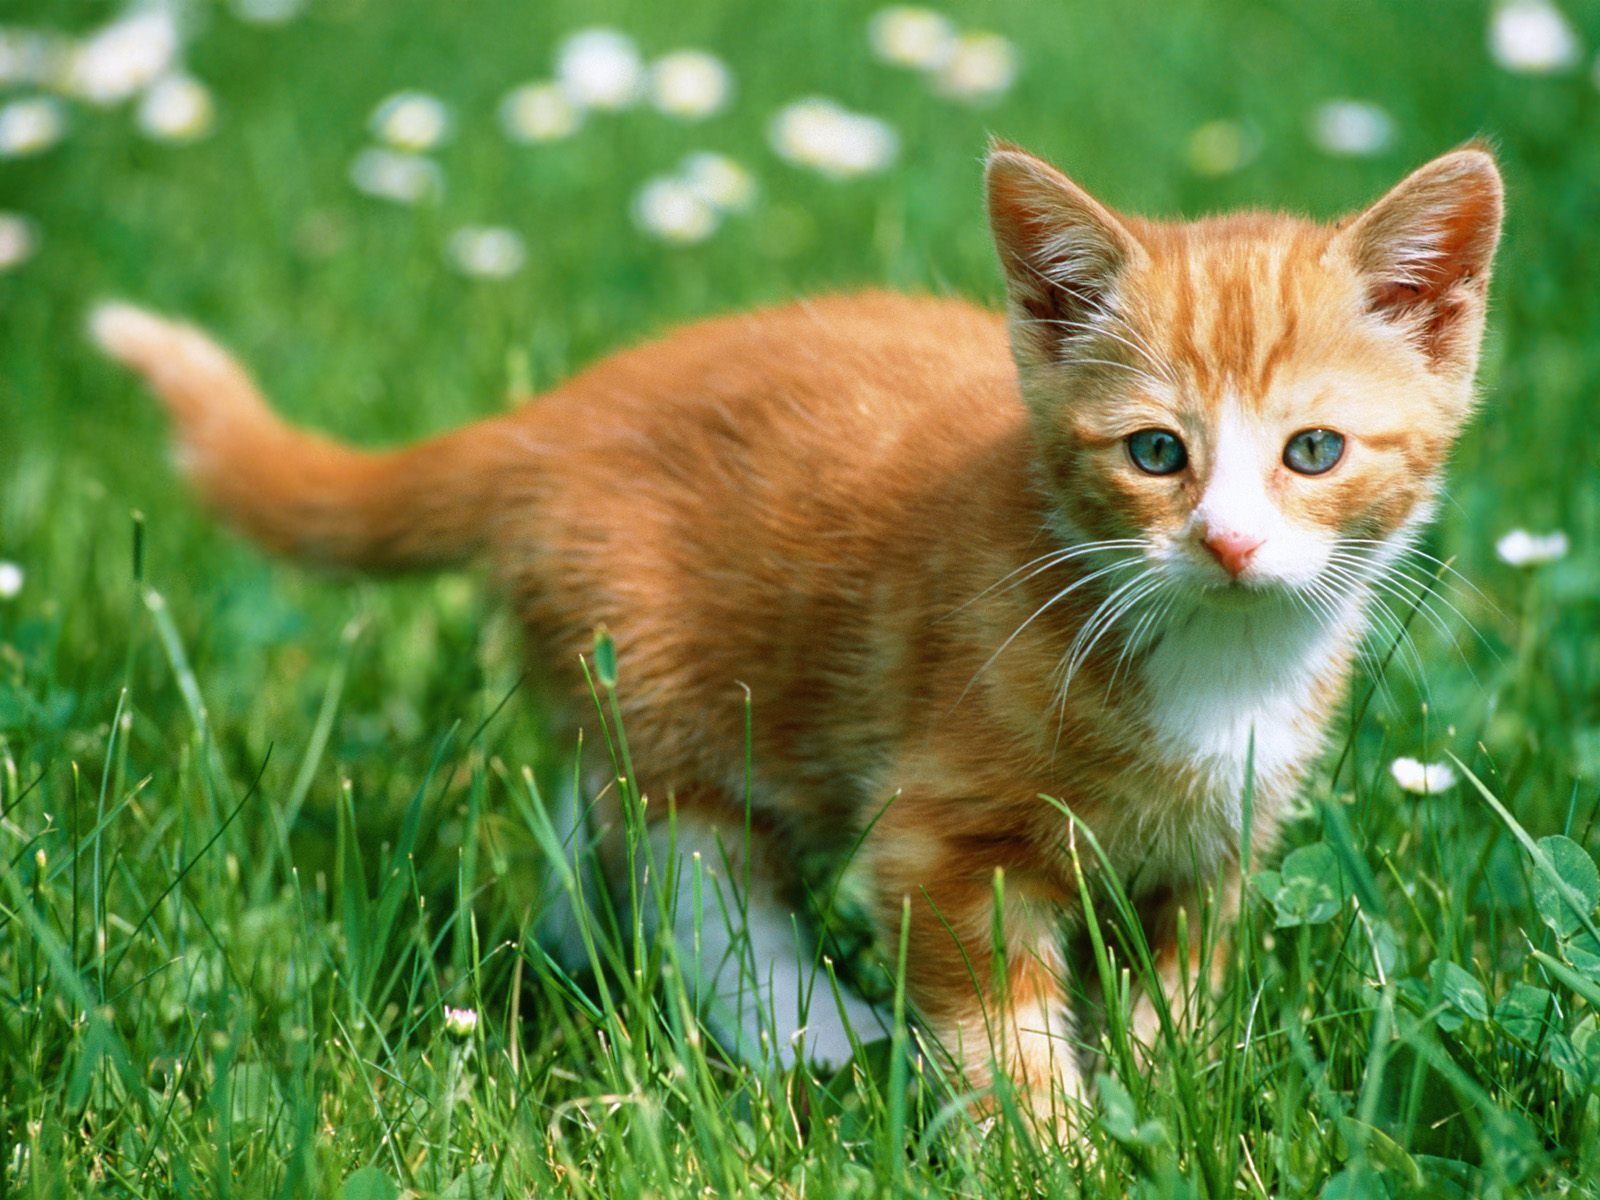 Cute Kittens Wallpapers   Wallpapers 1600x1200